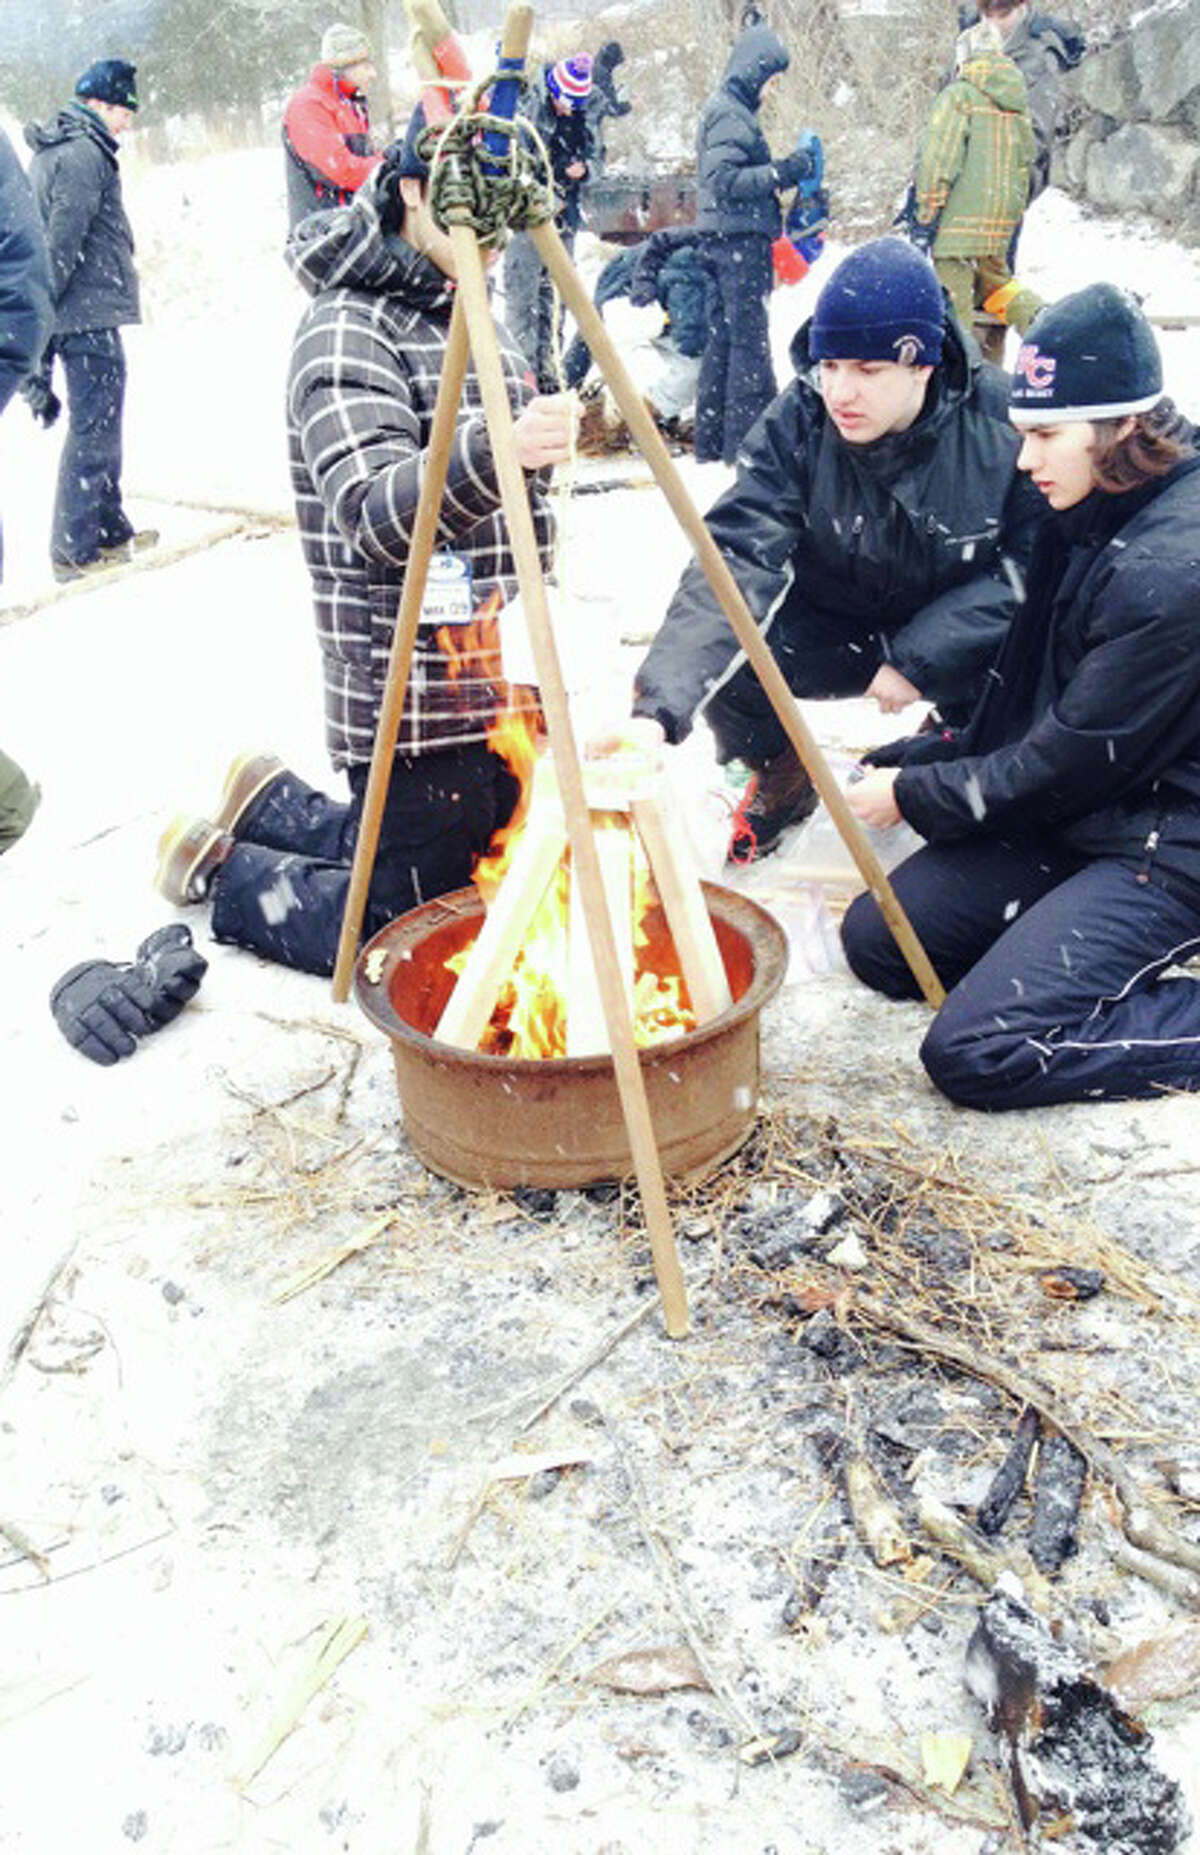 Fire building was an important skill to know to survive the extreme cold weather during Greenwich Scouting's annual Klondike Derby. Above, from left, Troop 37 Scouts Anthony Shaw, Matthew Baptist and Eugene Constandaki use their fire-building skills to melt a block of ice left .